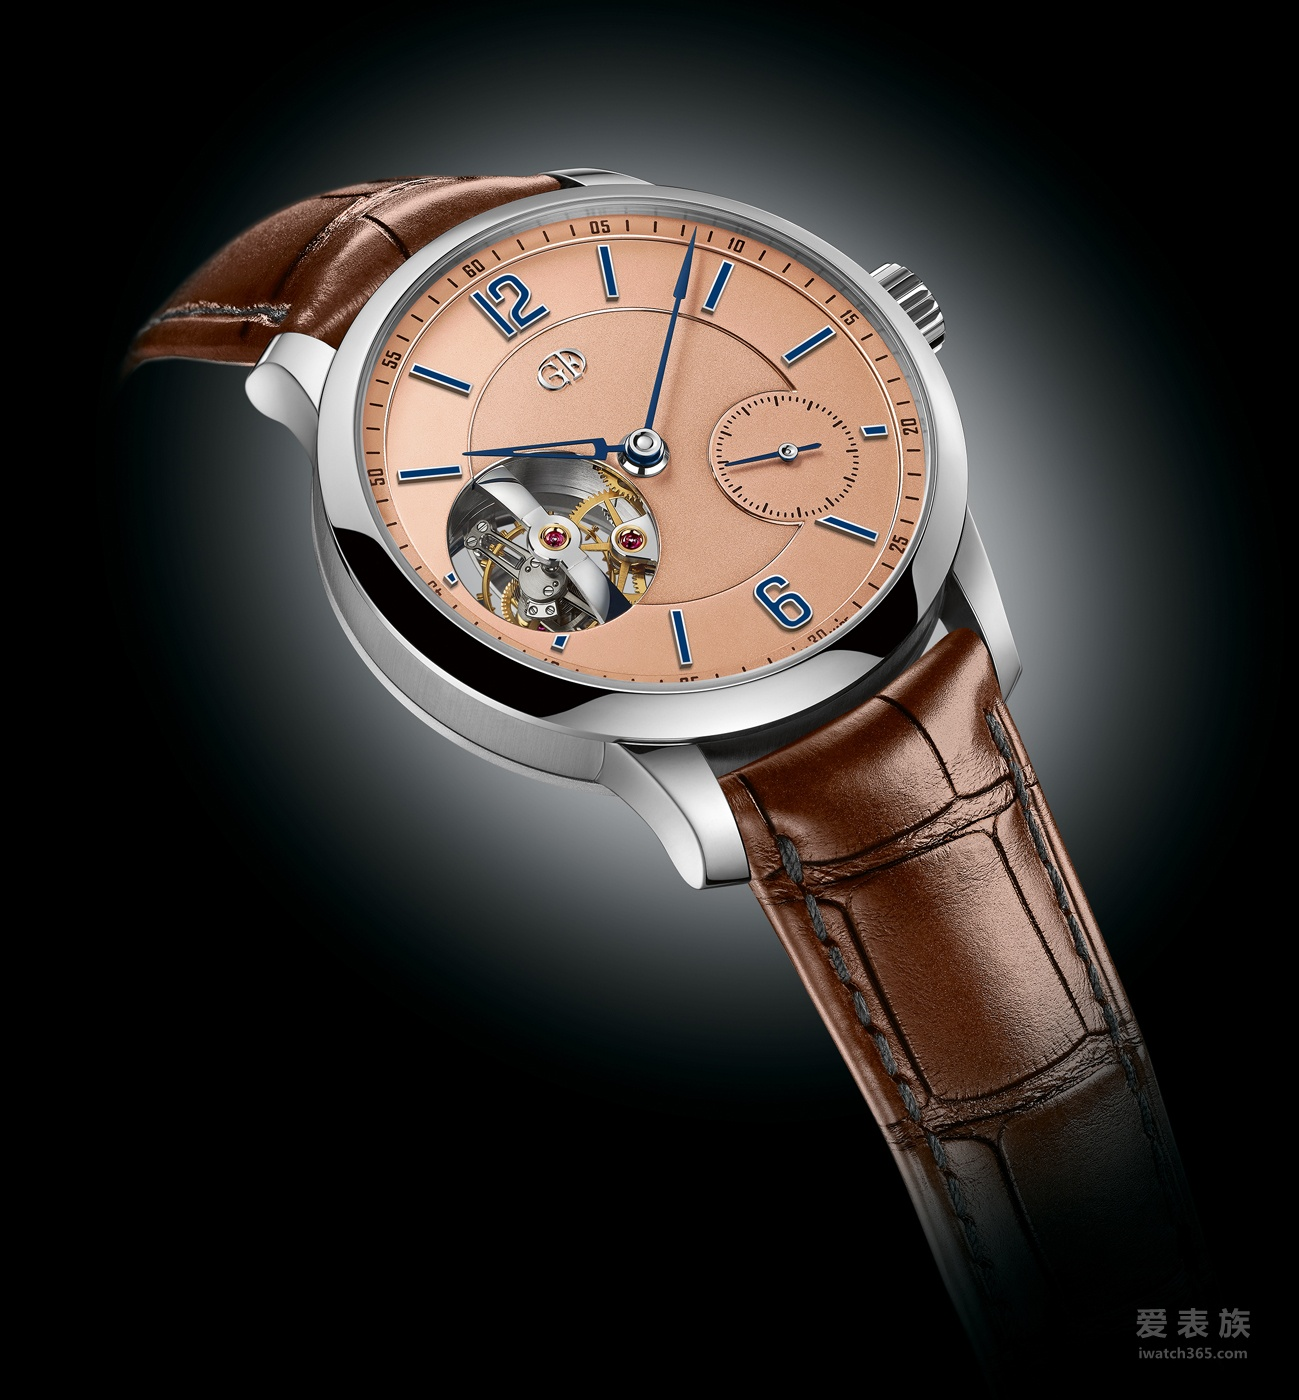 GREUBEL FORSEY 高珀富斯 TOURBILLON 24 SECONDES VISION腕表换上铂金新装